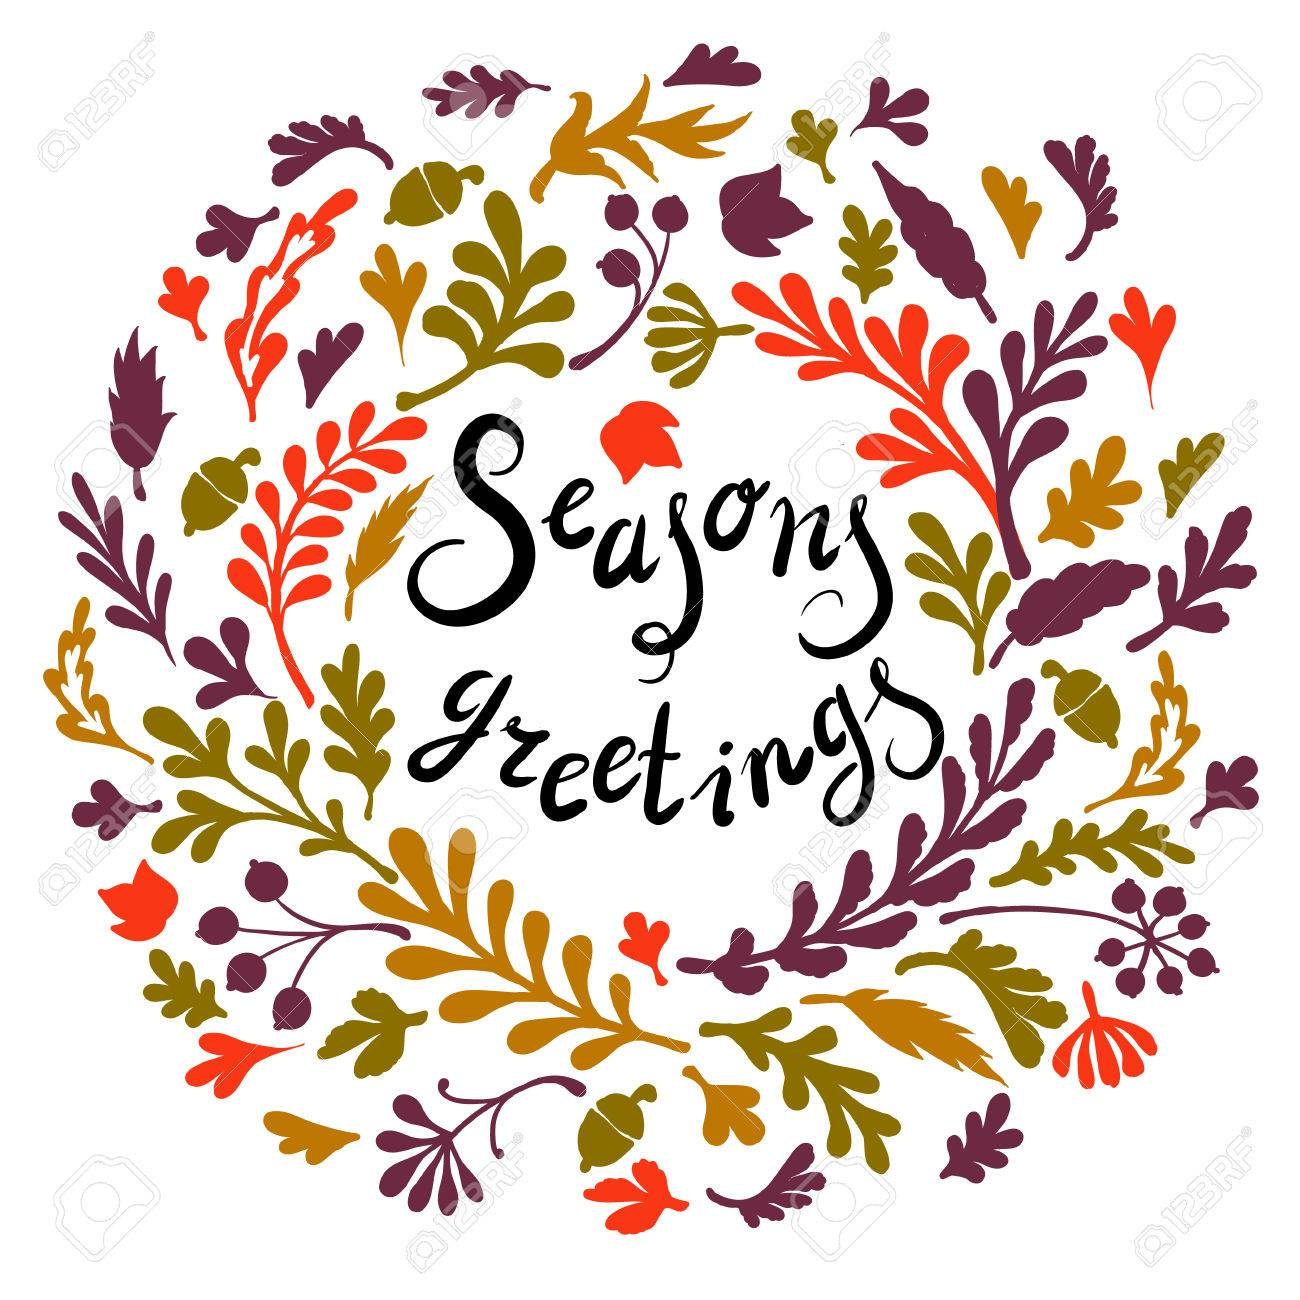 Vignette of colourfull leaves ncludes text seasons greetings vignette of colourfull leaves ncludes text seasons greetings vector illustration stock vector 45944386 kristyandbryce Image collections